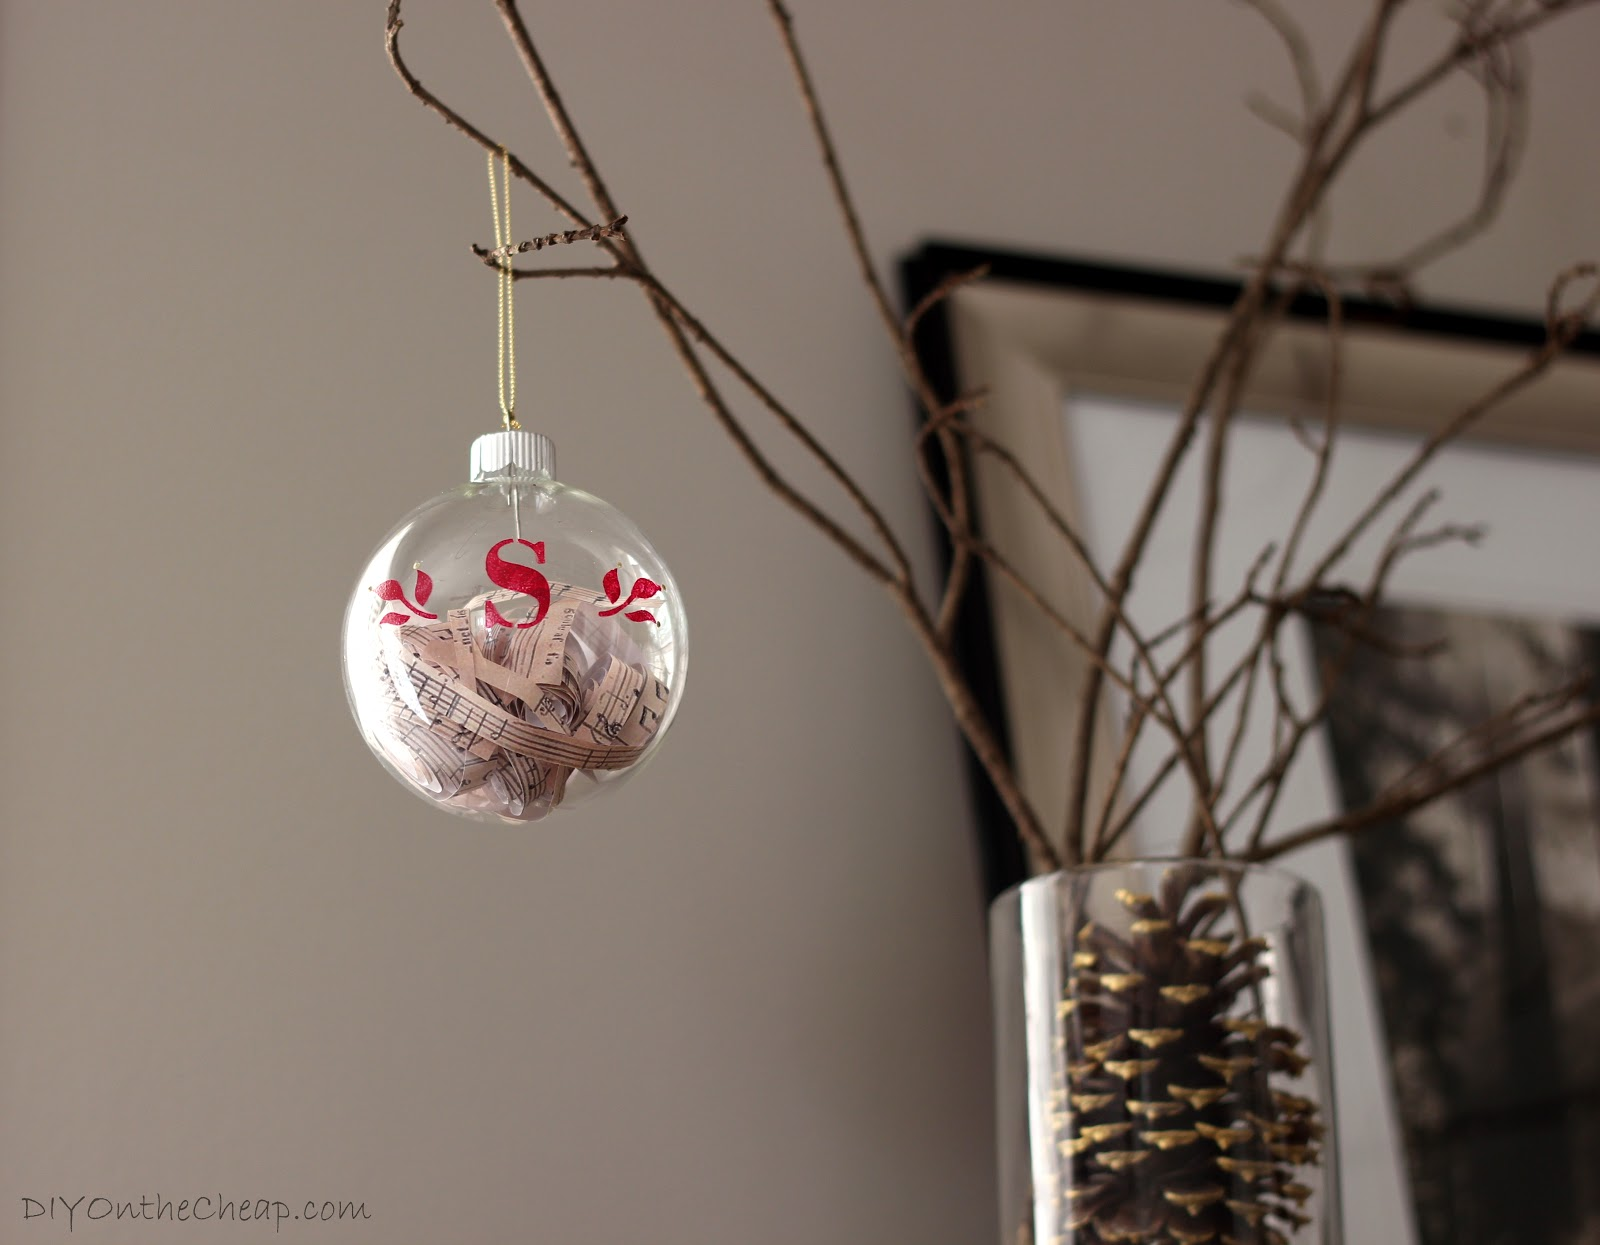 Monogrammed glass ornament filled with sheet music